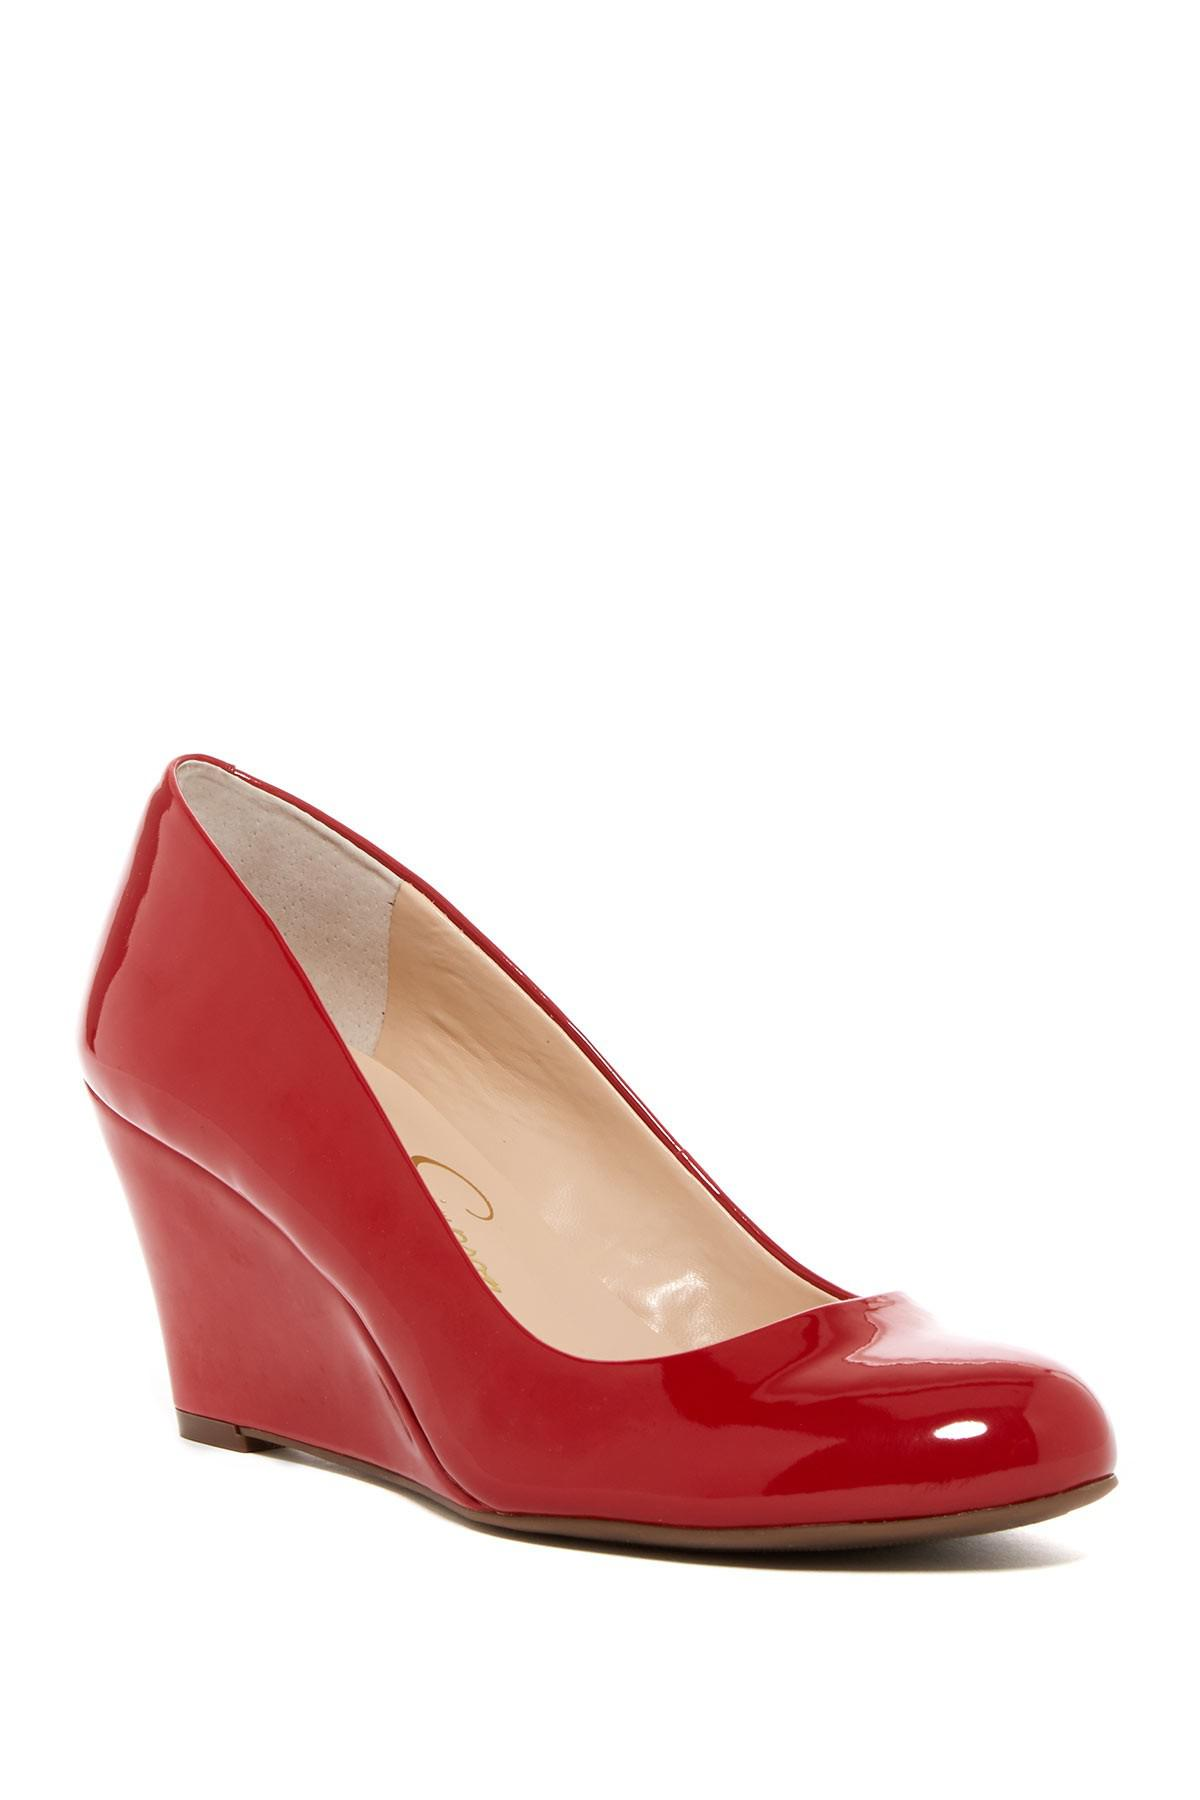 41087f070f2 Jessica Simpson. Women s Red Suzanna Wedge Pump - Multiple Widths Available